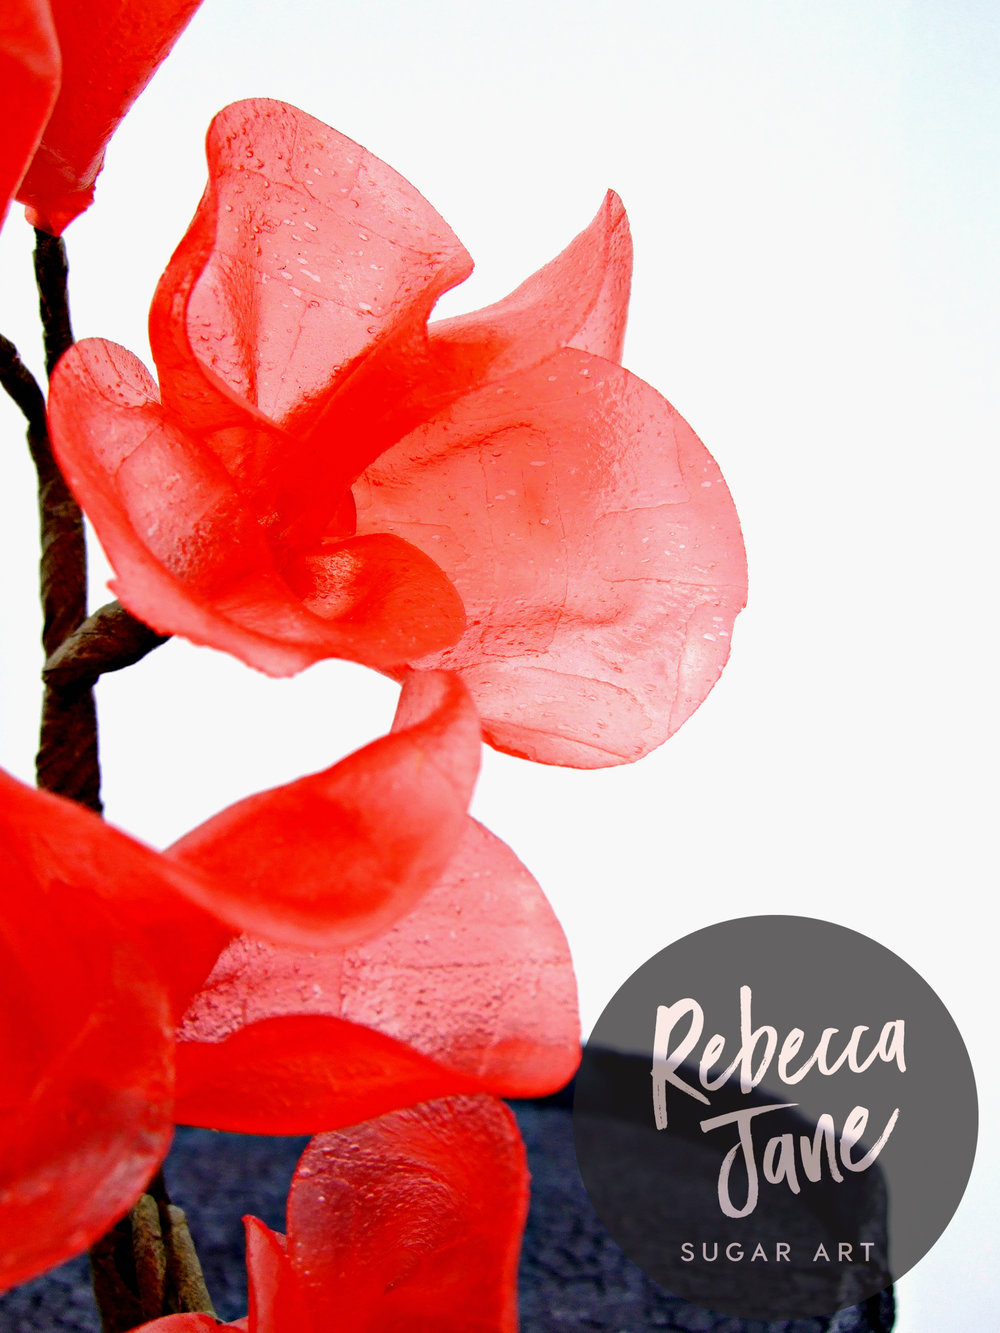 Rebecca Jane Sugar Art - Red rice paper flowers on black crackle textured fondant cake